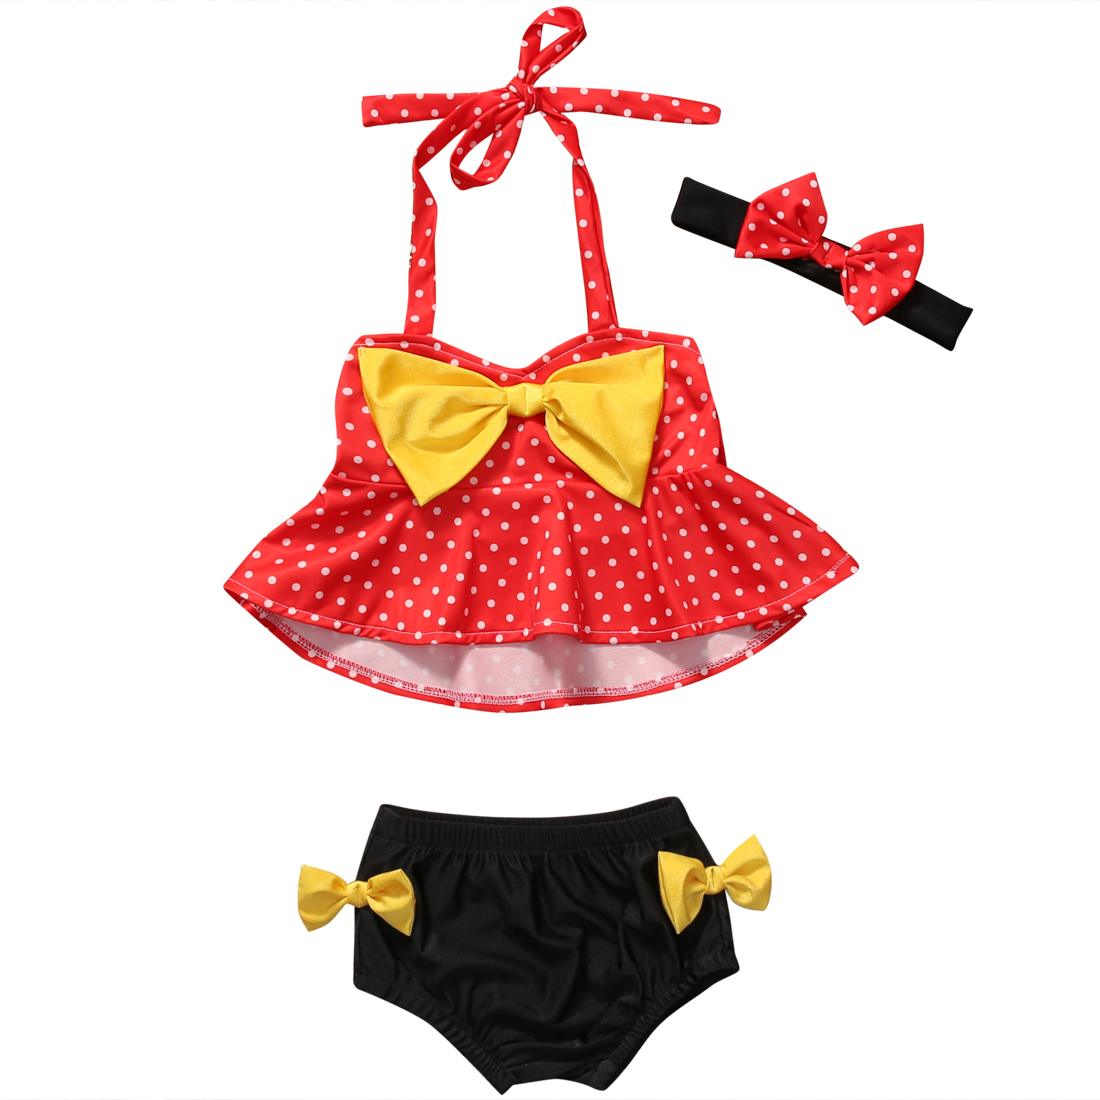 Baby Girl summer Clothing Kids Baby Girl Tankini Bikini Set Polka dress shorts Headband Swimwear Swimsuit Bathing Suit Beachwear